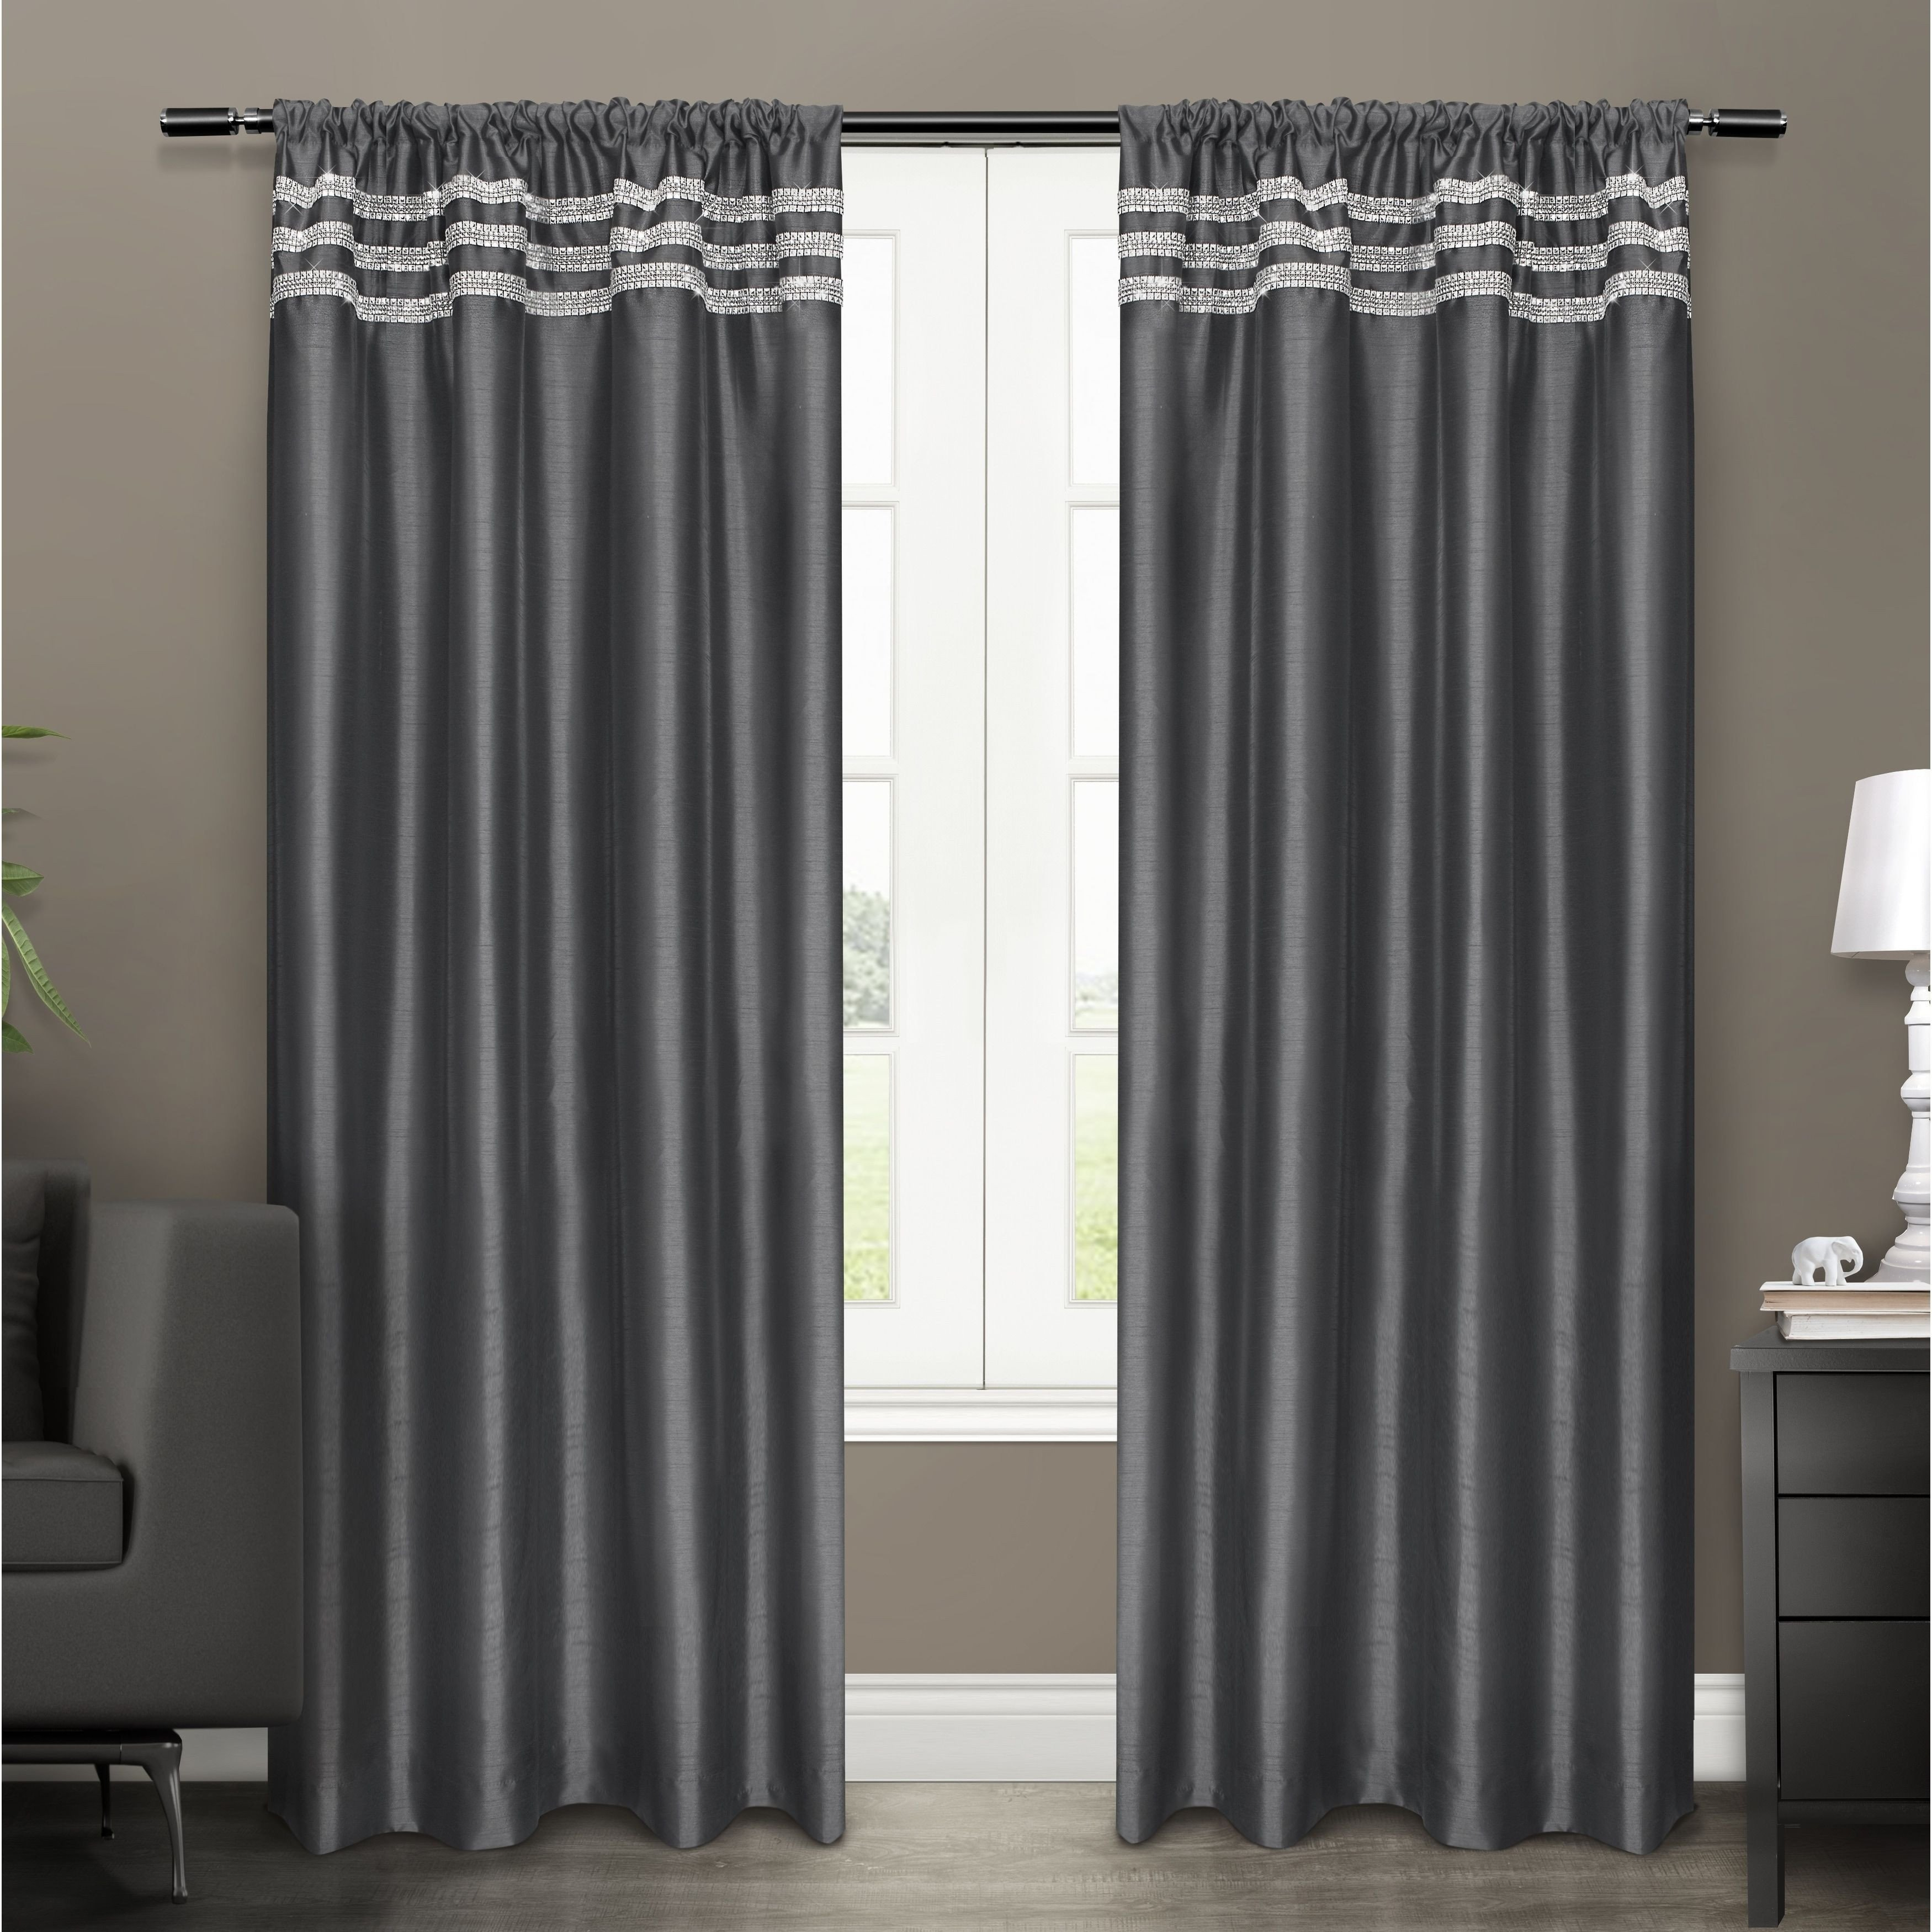 Plum Curtains for Bedroom Best Of ati Home Bling Embellished Rod Pocket top Curtain Panel Pair